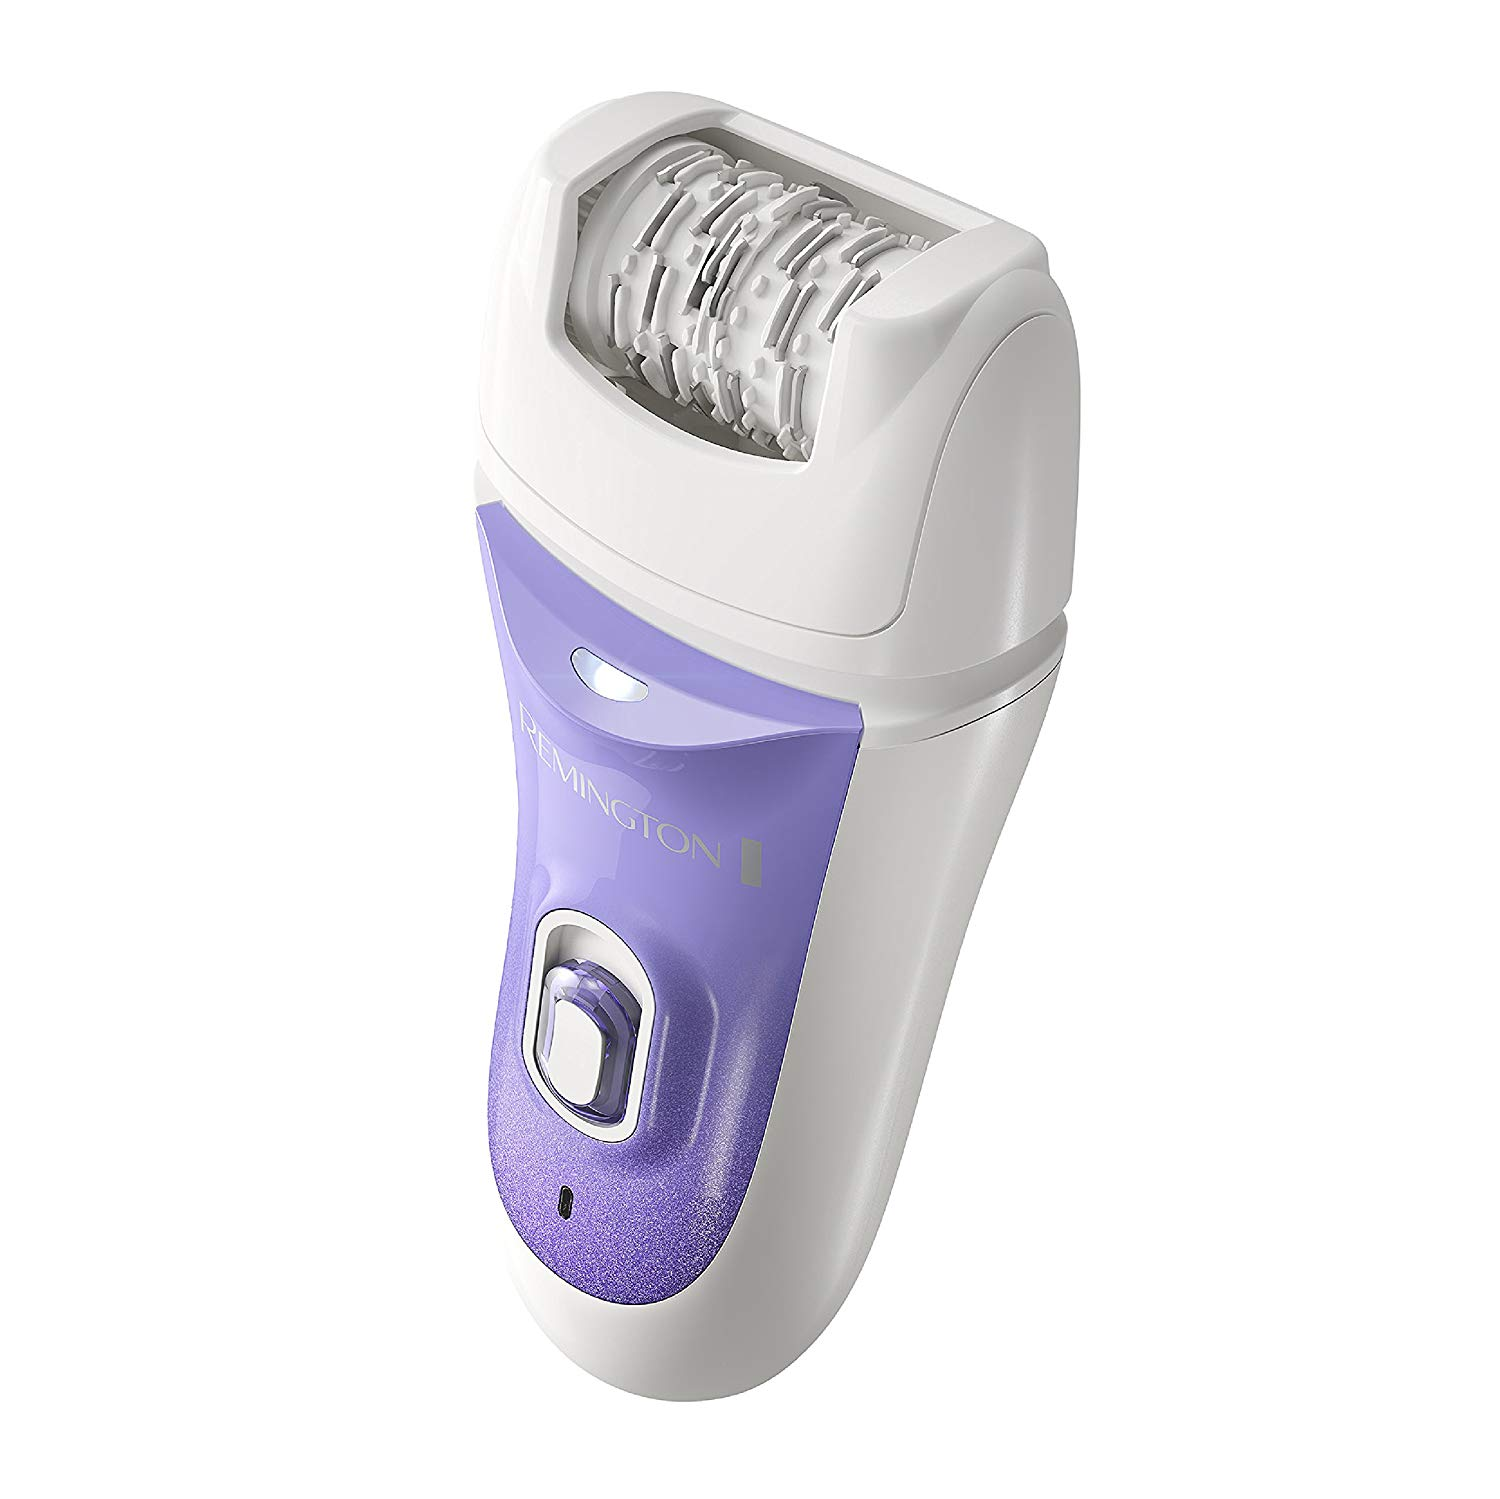 Remington Smooth And Silky Epilator Review 2020